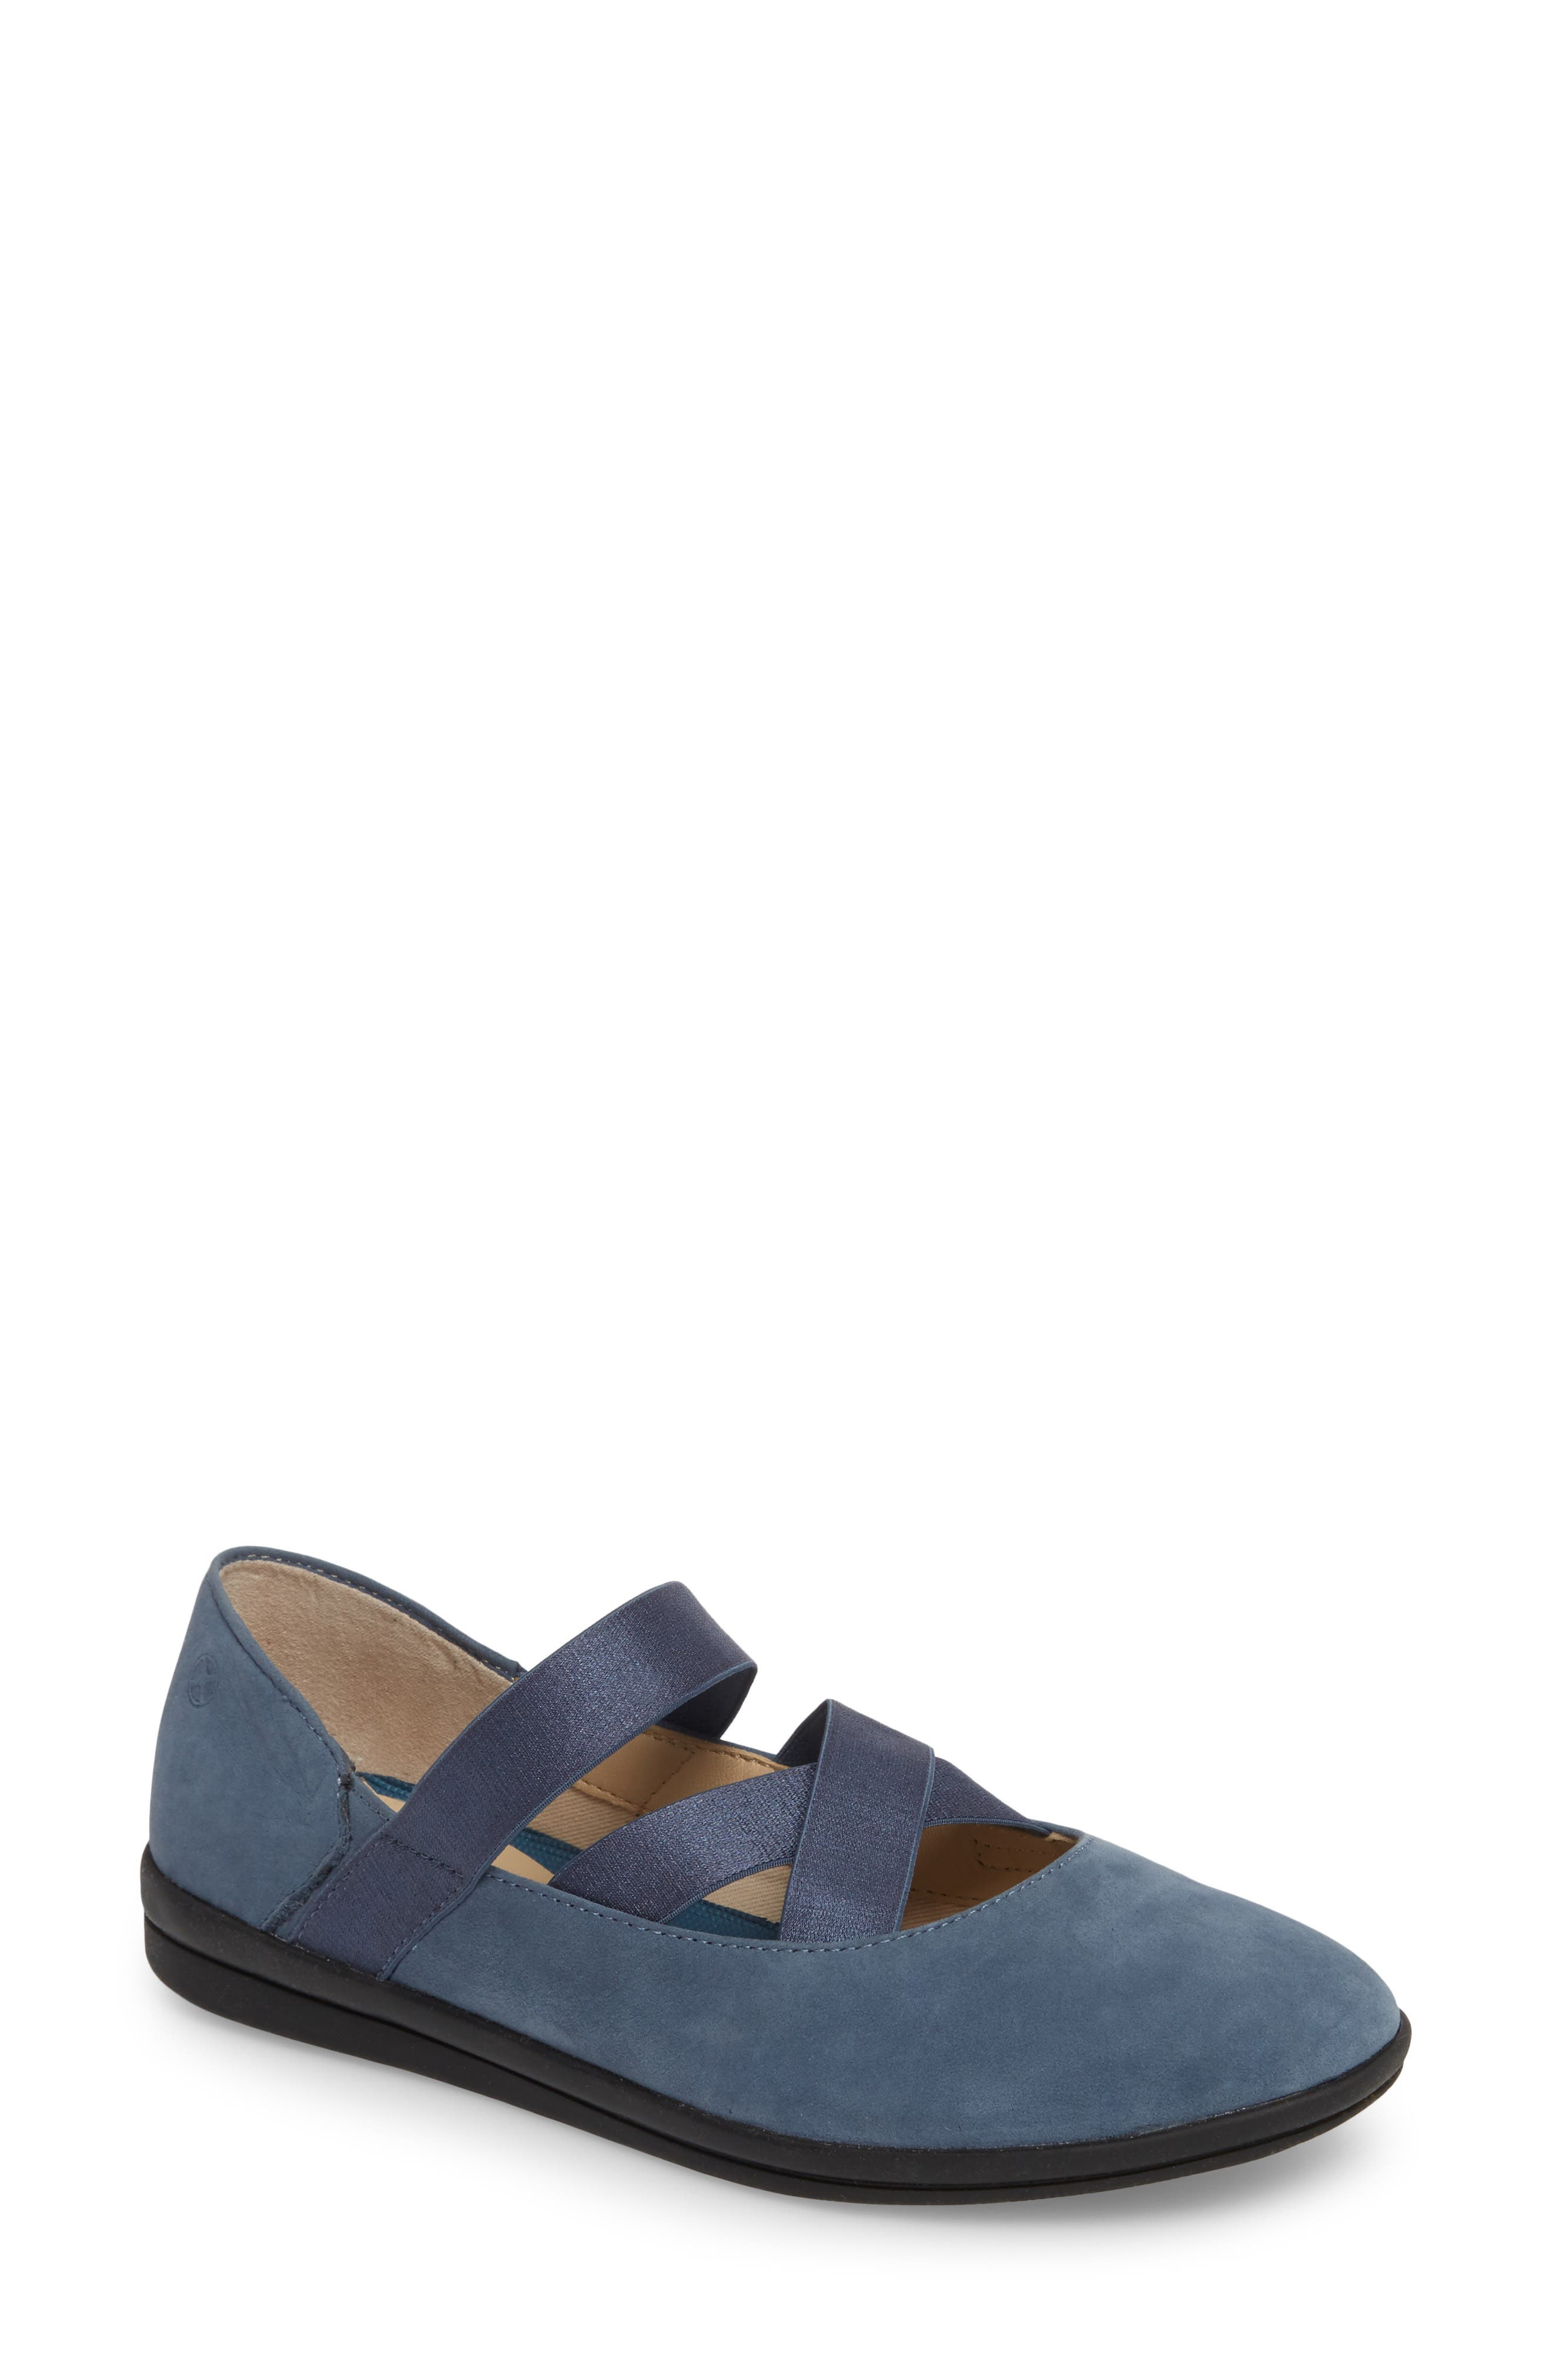 Meree Madrine Cross Strap Flat,                             Main thumbnail 1, color,                             Vintage Indigo Nubuck Leather